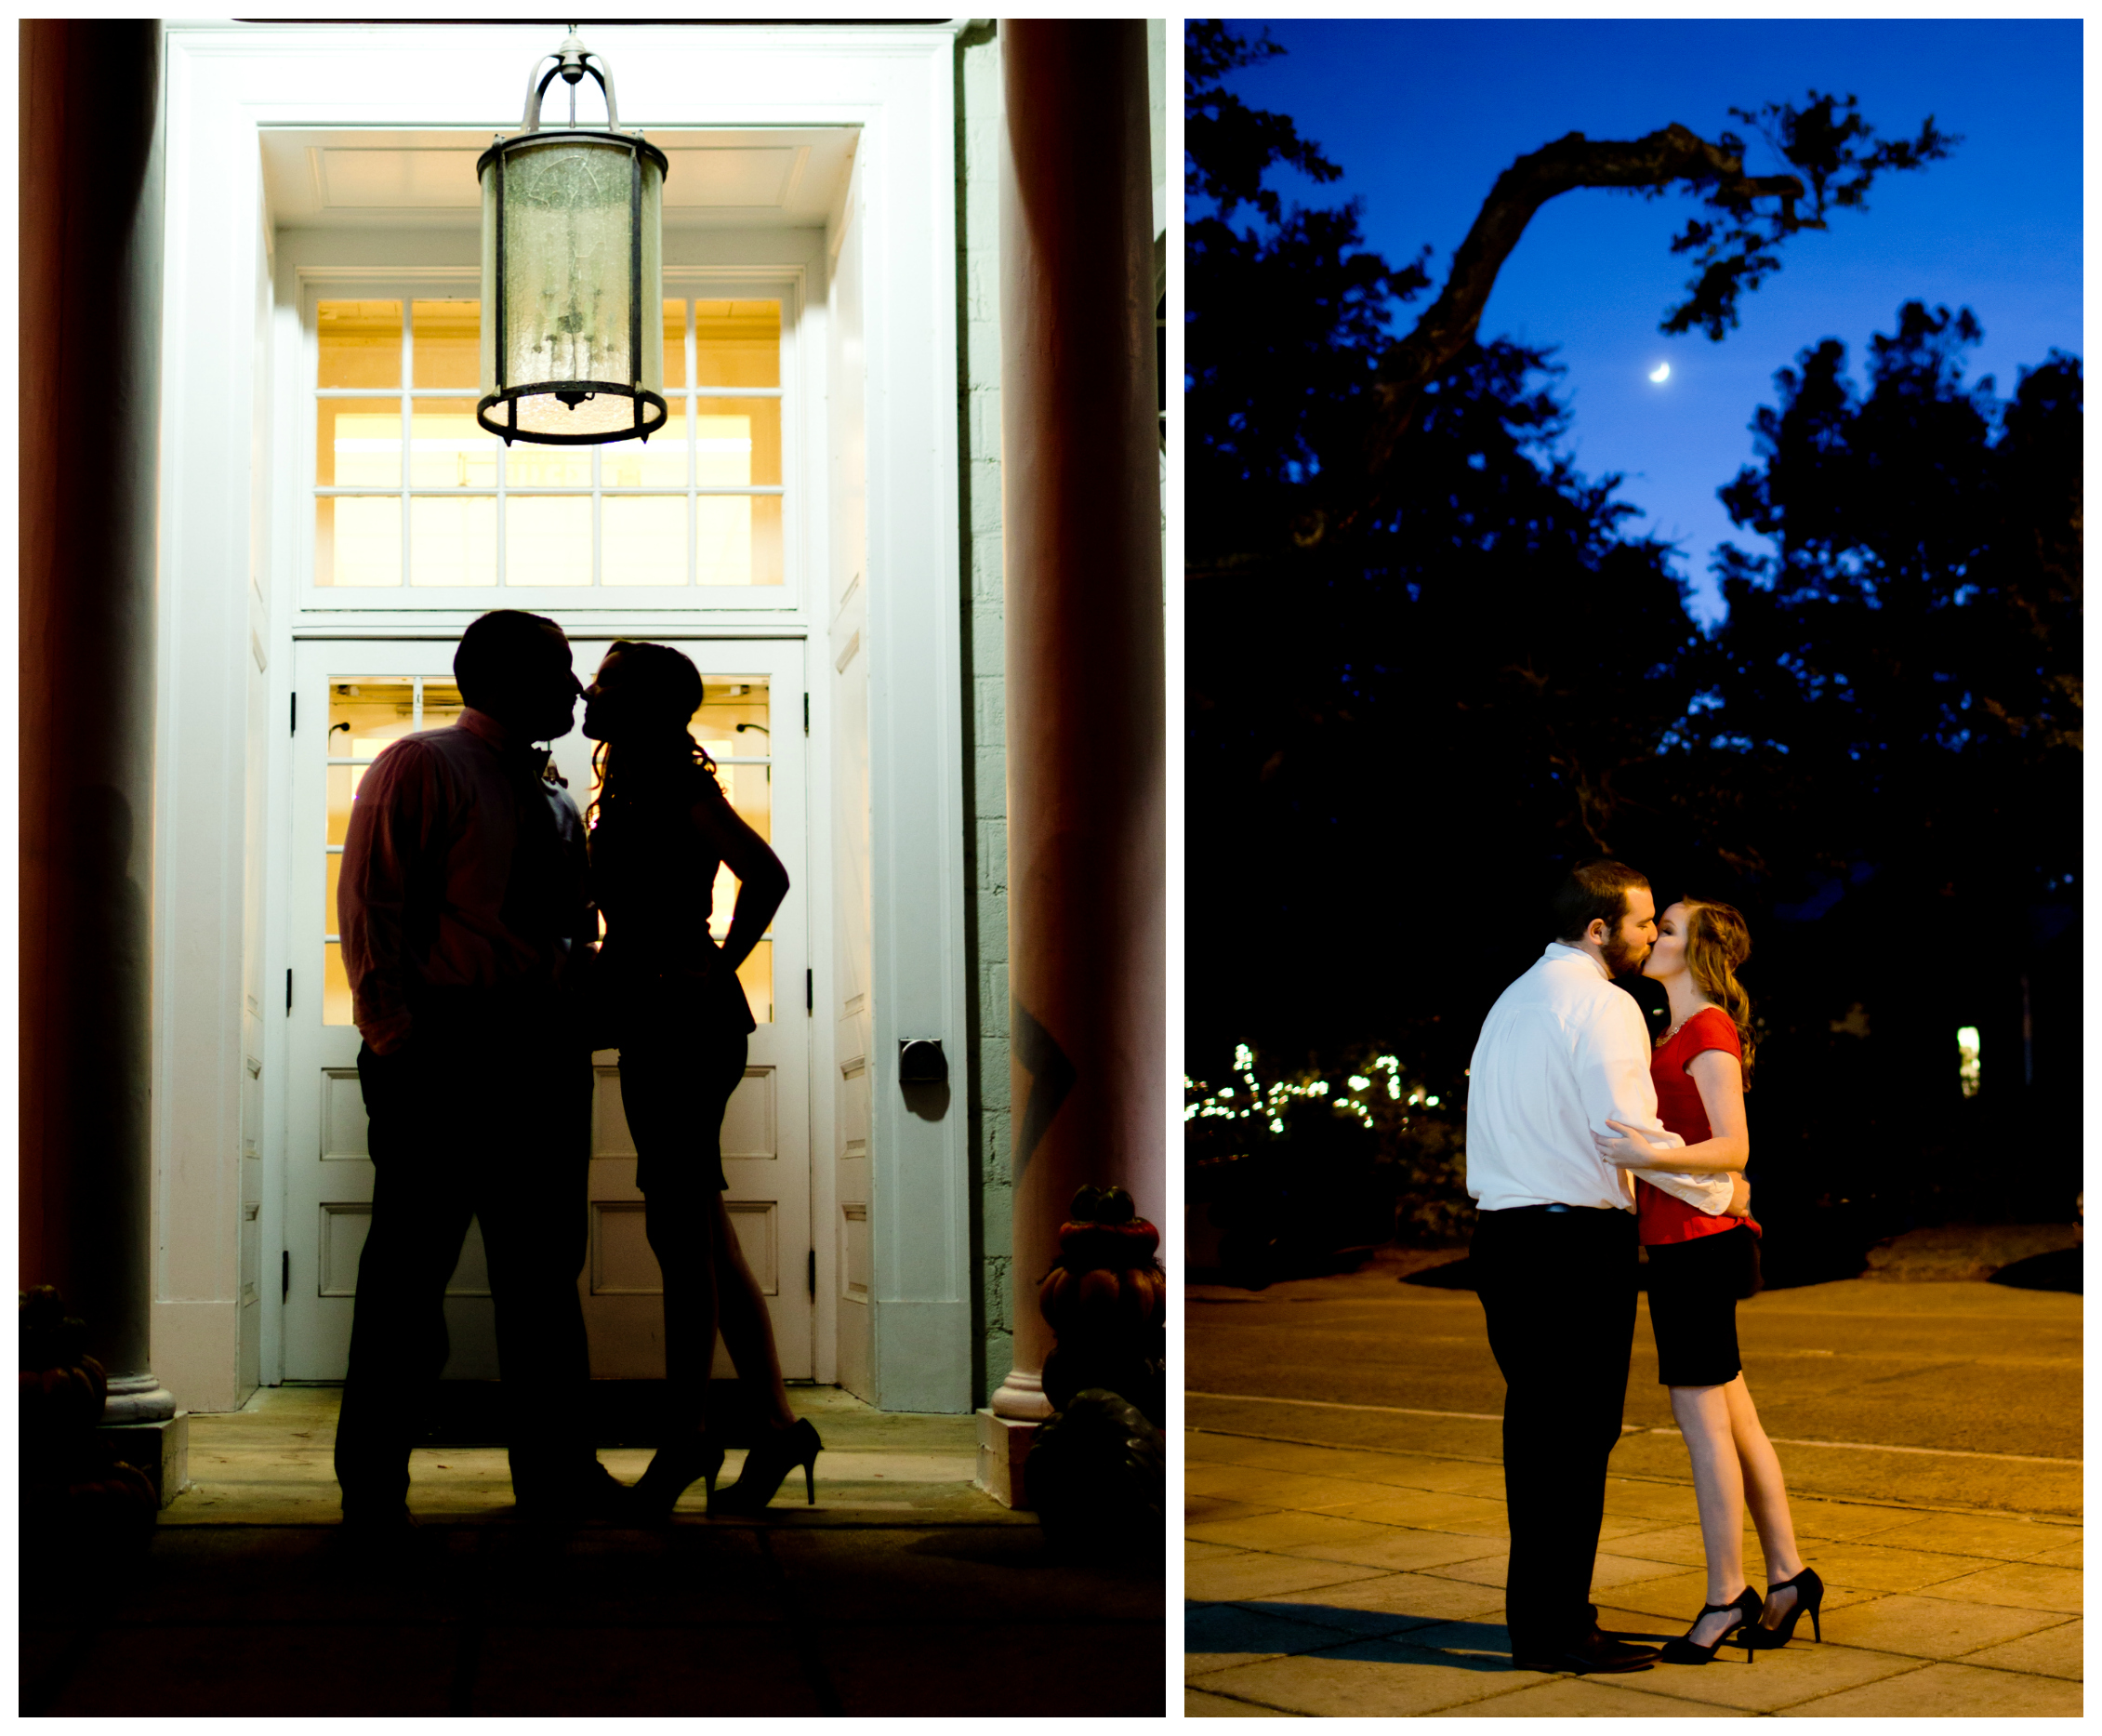 night time engagement session (moon, silhouette)